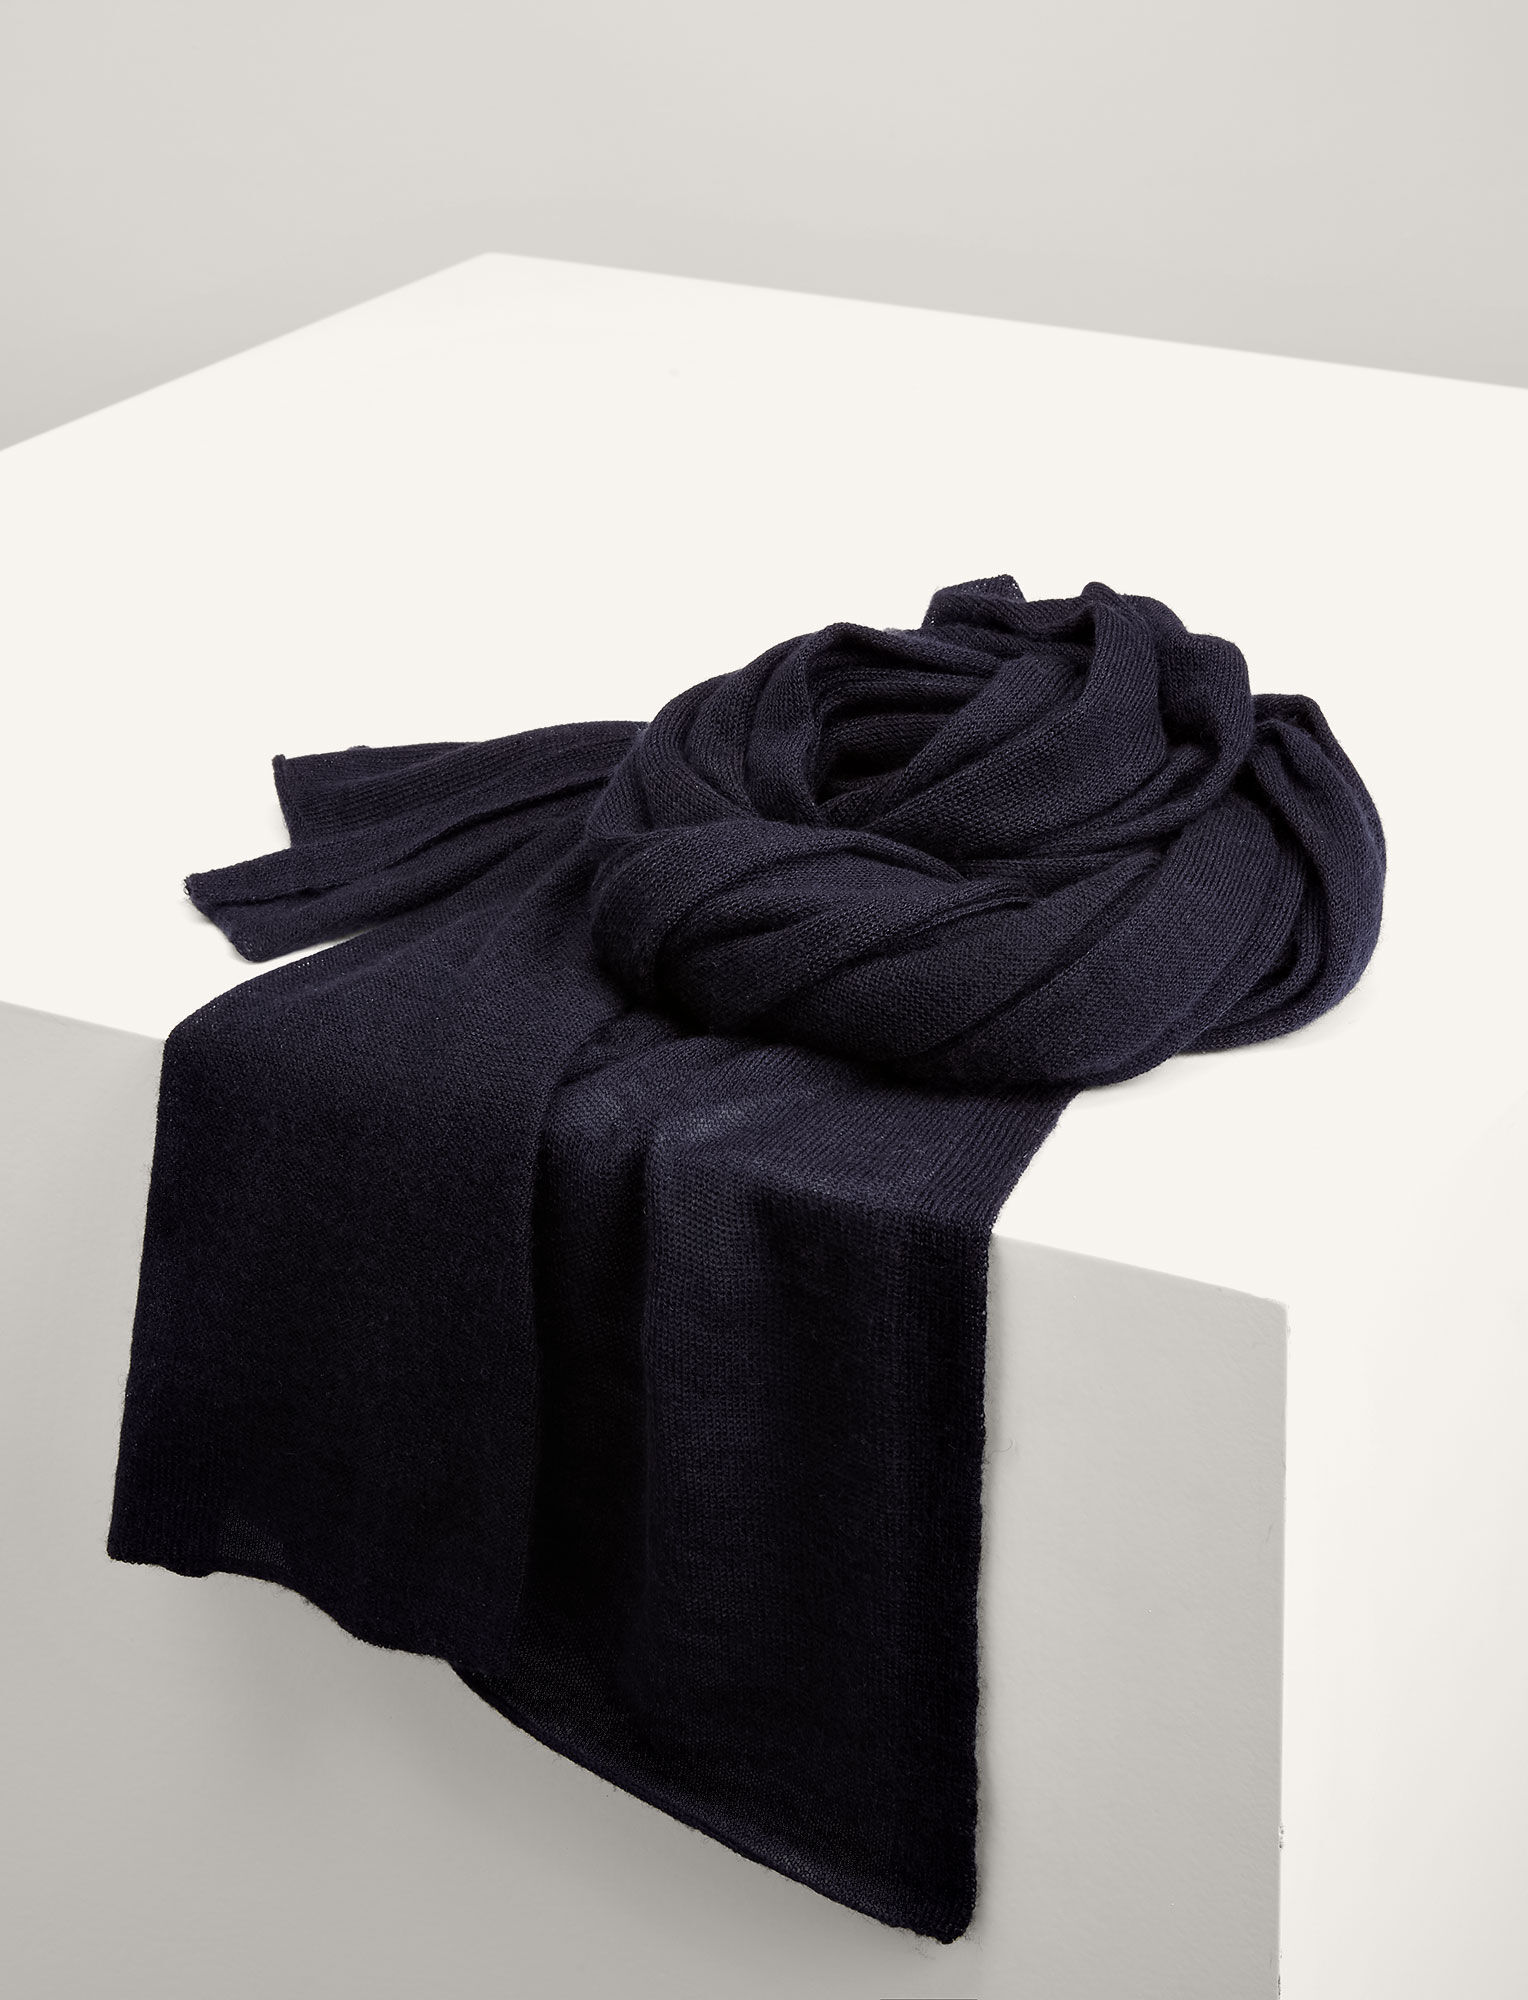 Joseph, Tube Cashair Scarf, in NAVY